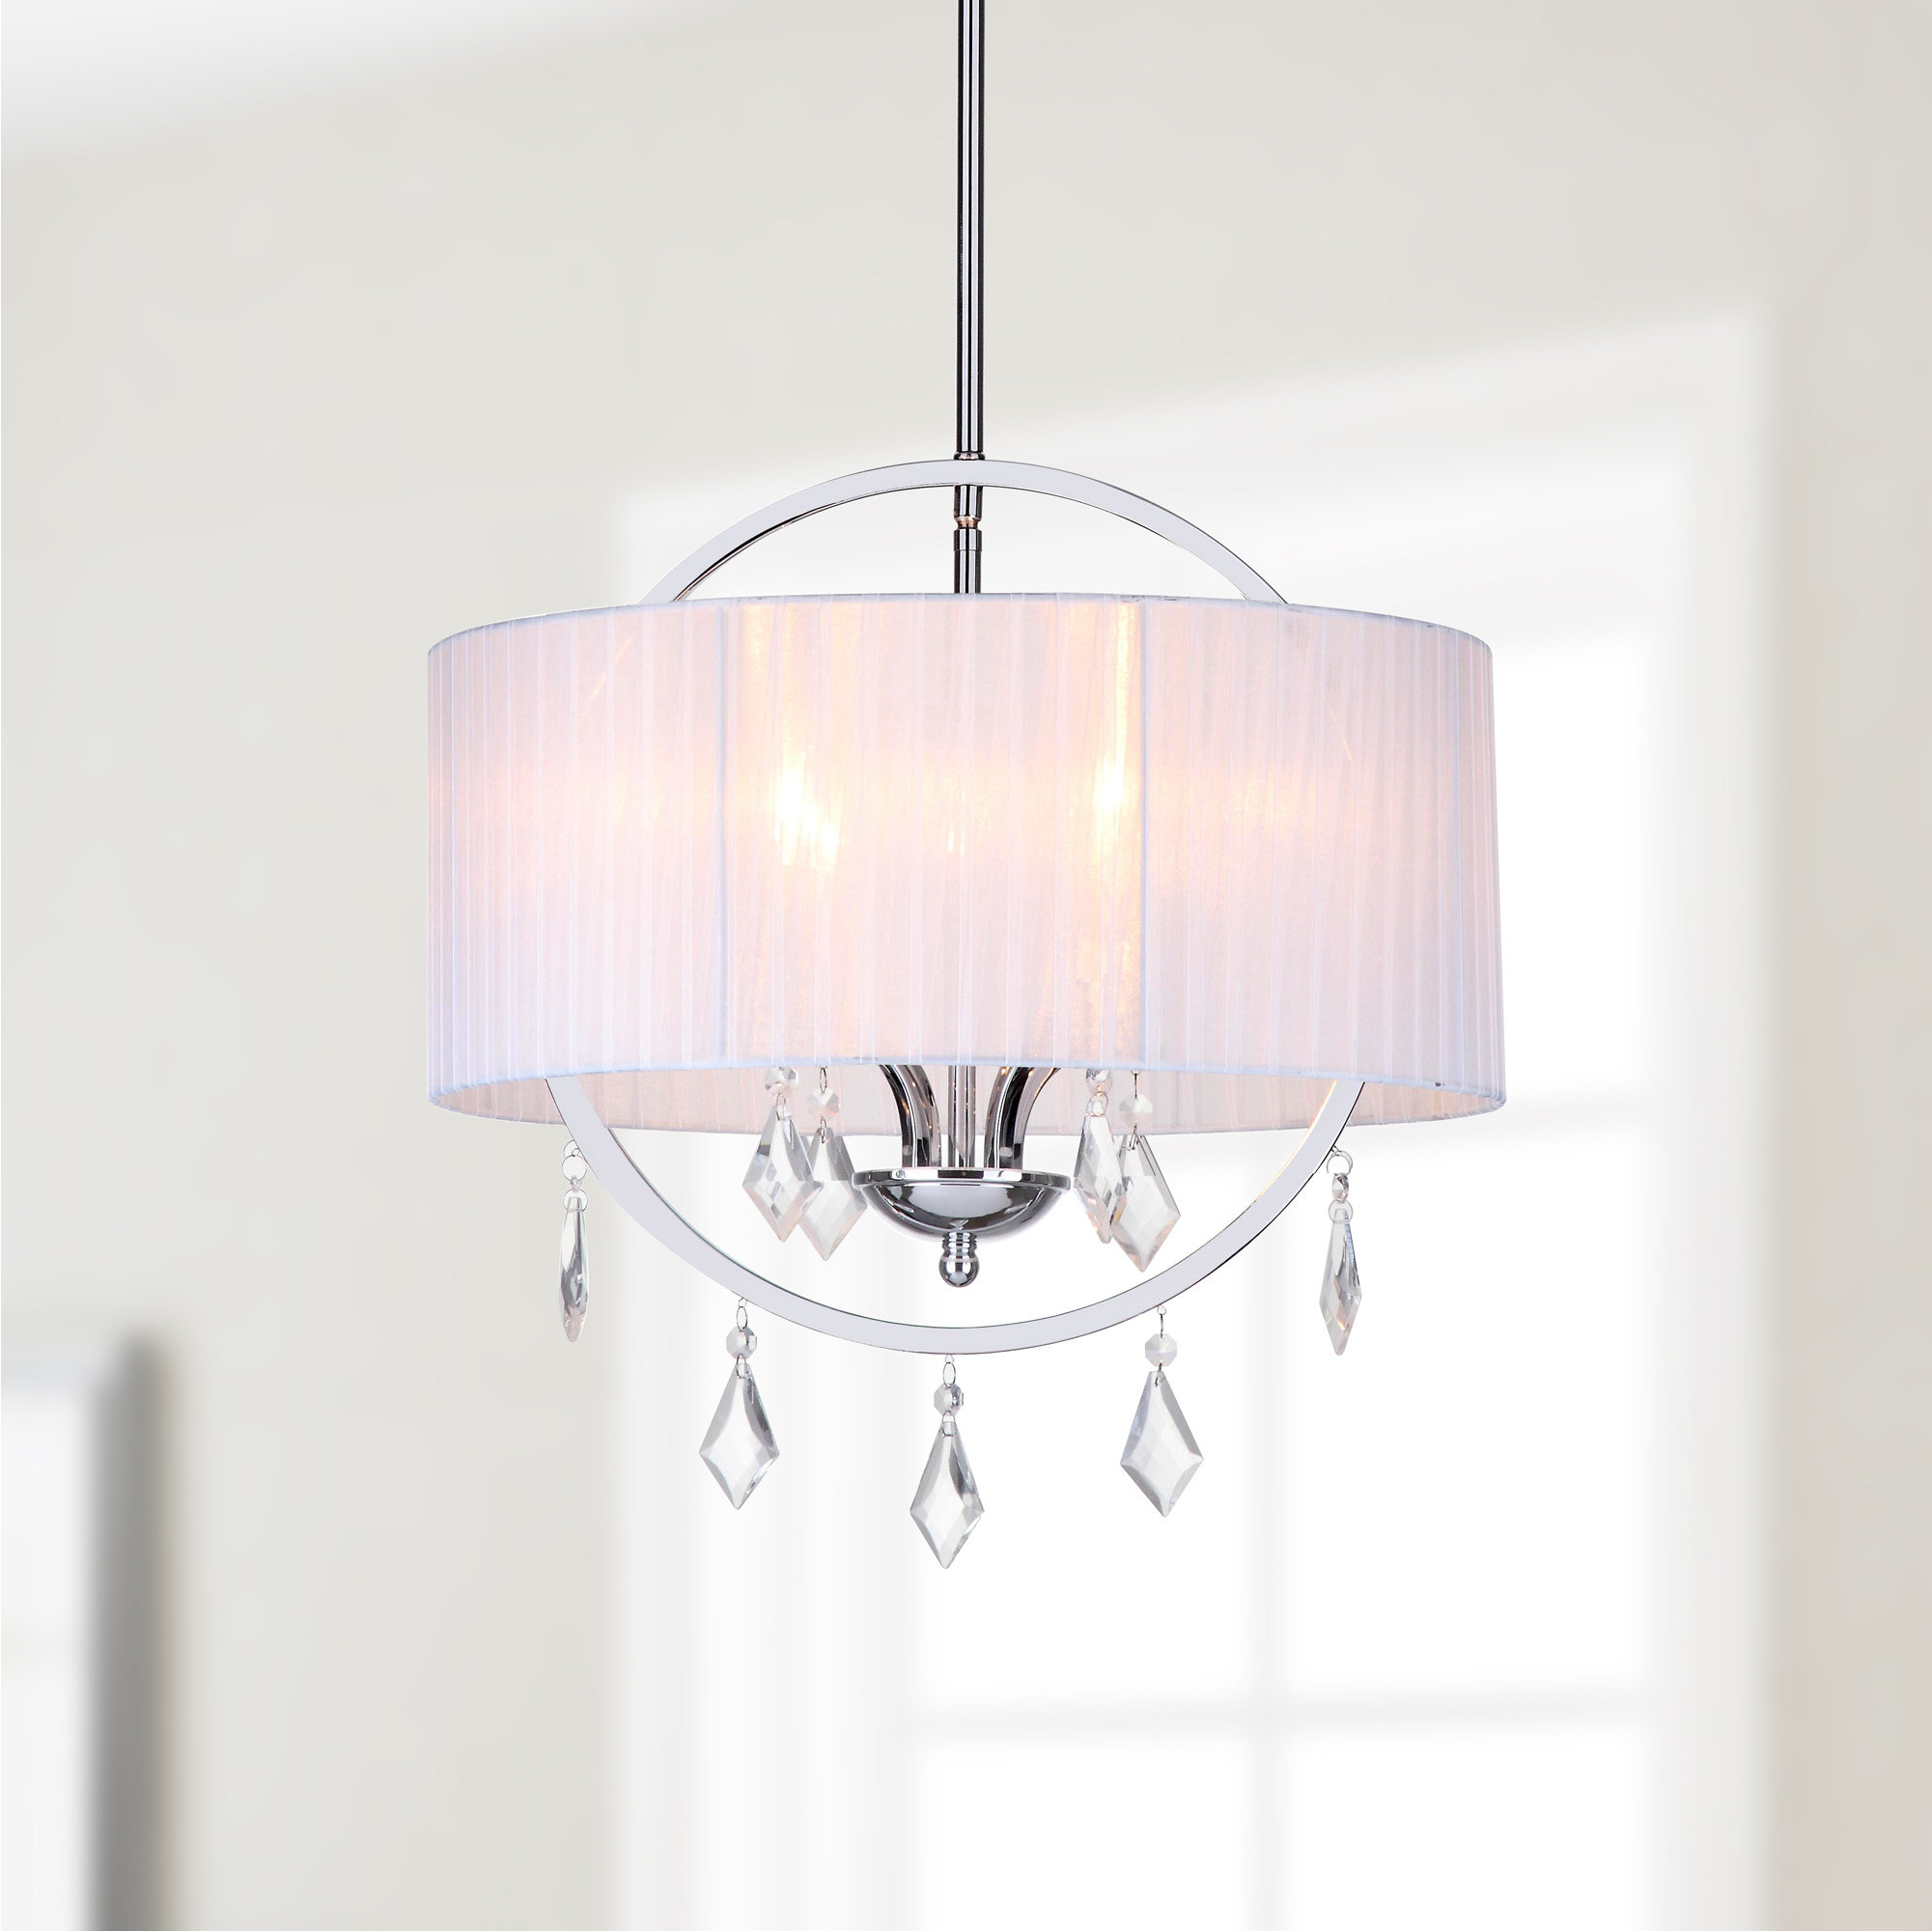 Buster 5 Light Drum Chandeliers In Well Known Hornersville 4 Light Drum Chandelier (Gallery 11 of 20)